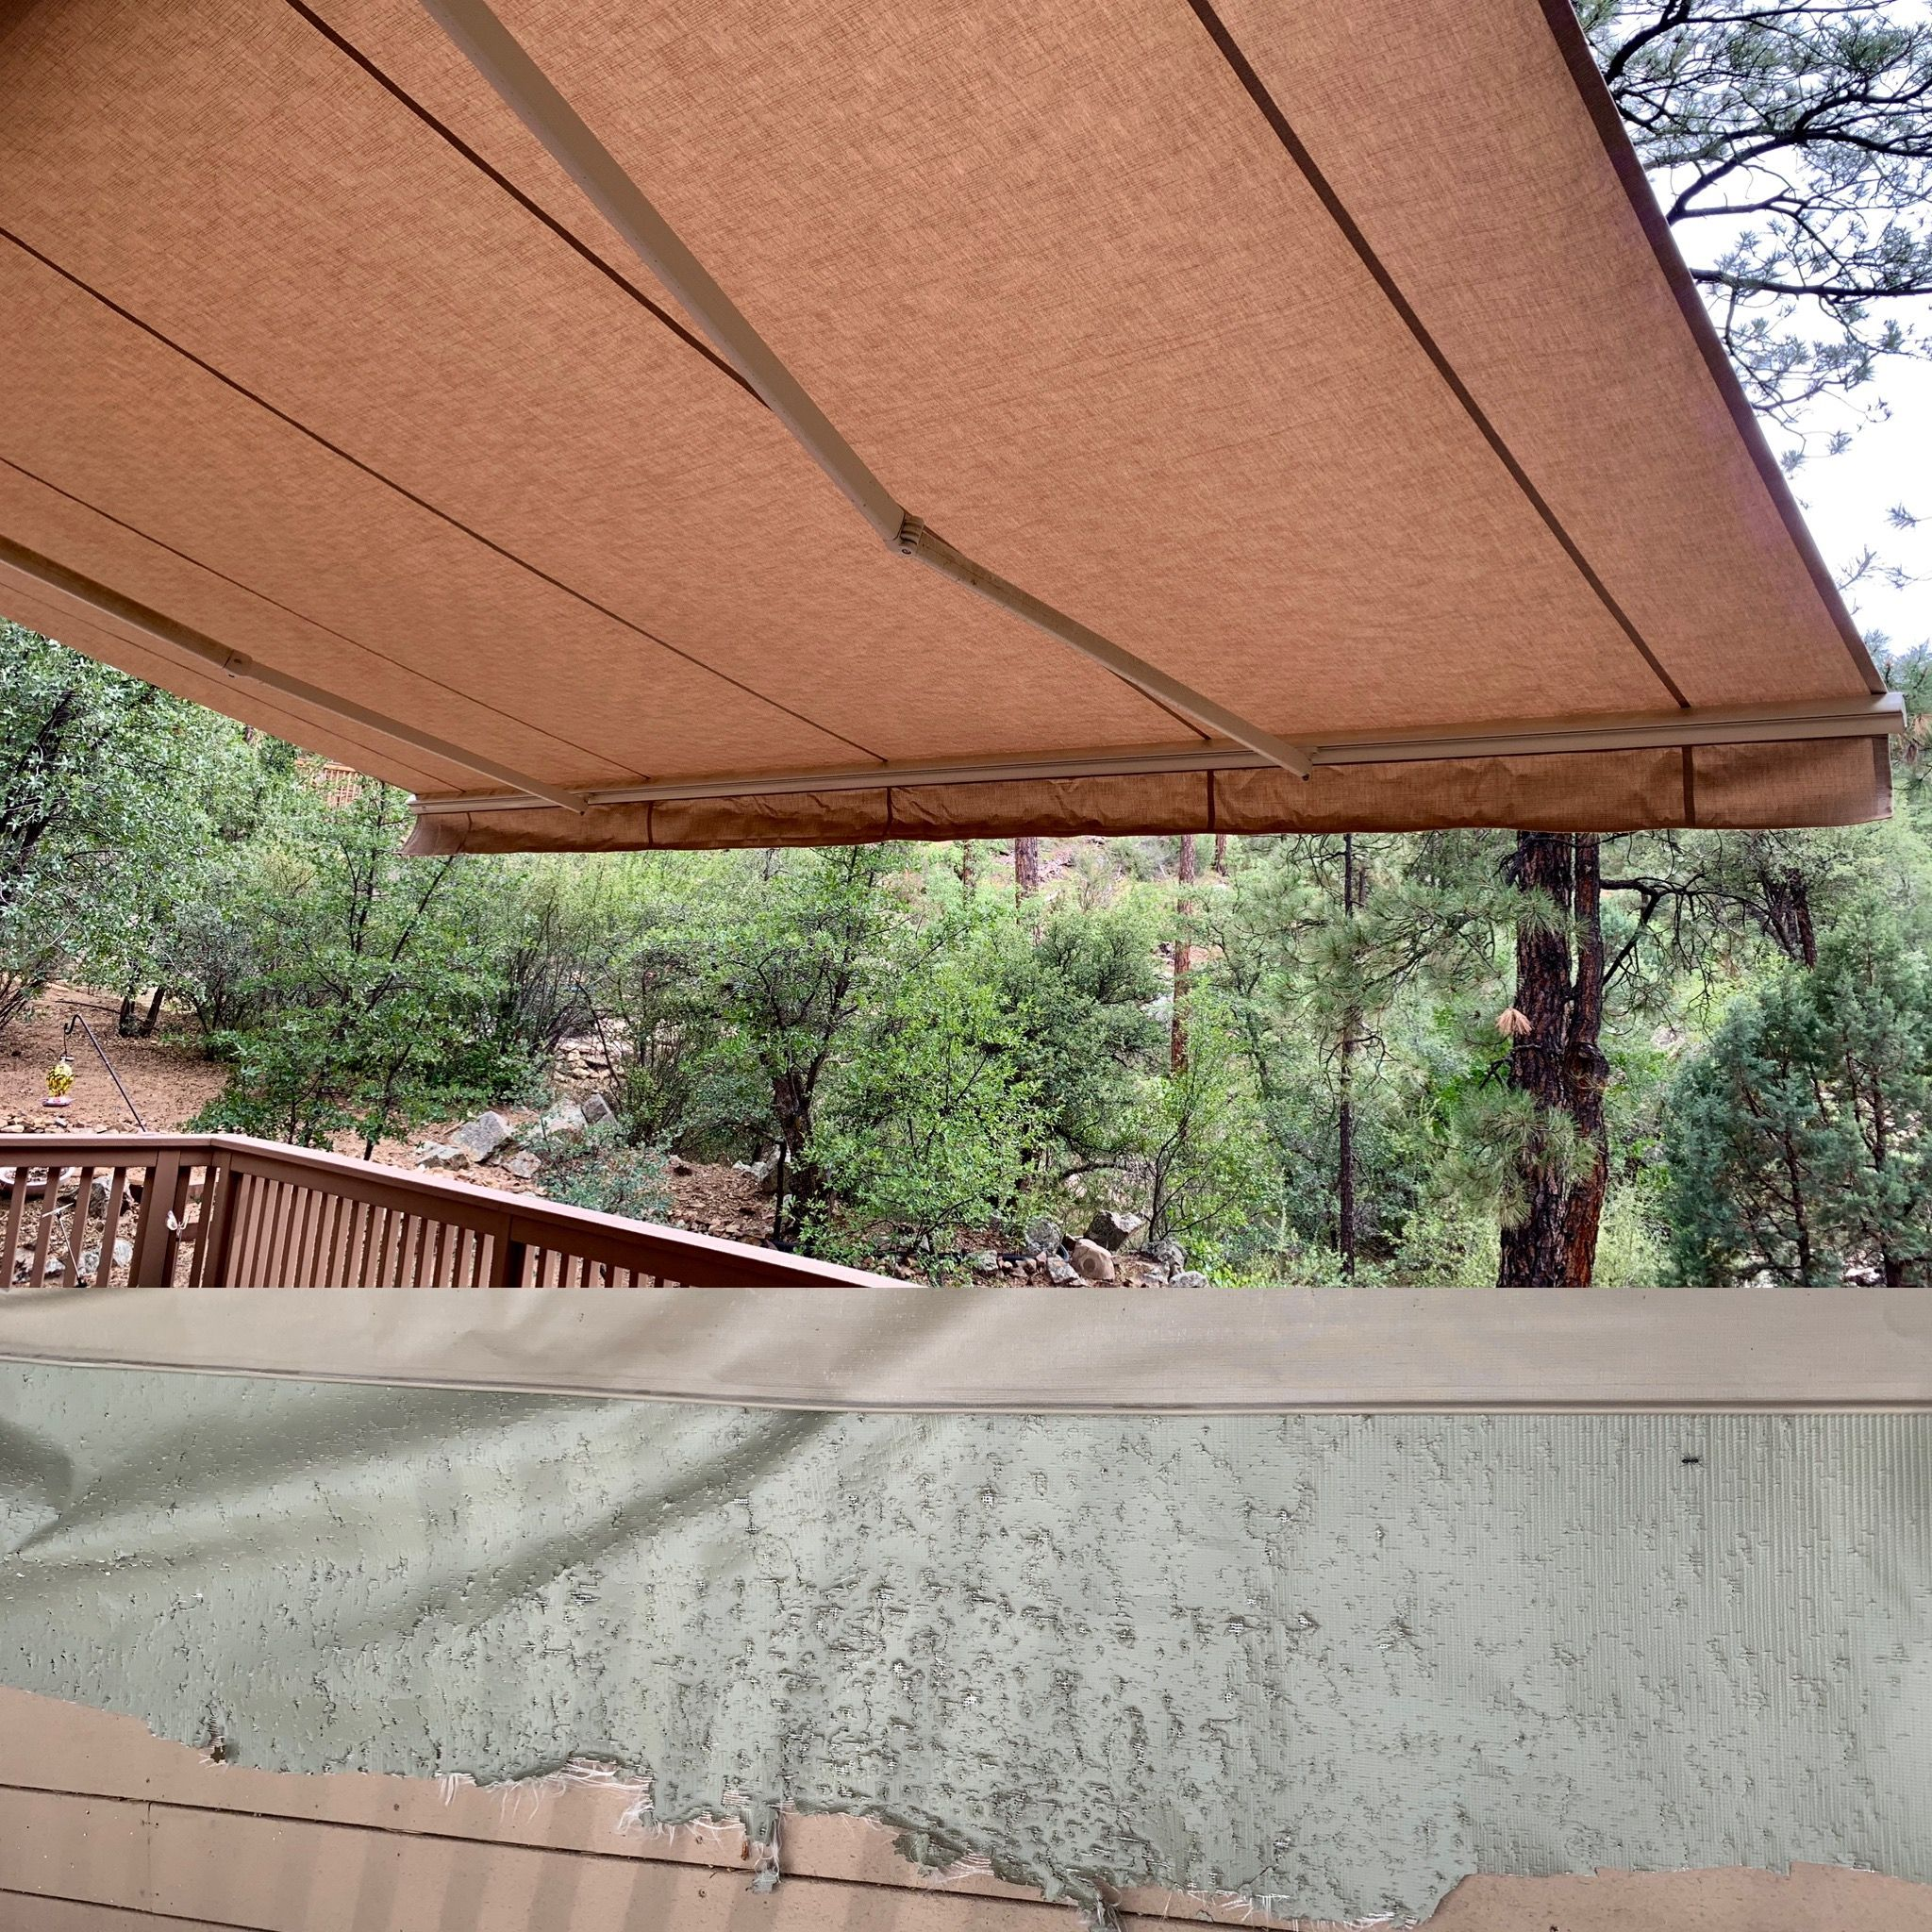 Awning Repair Prescott Az Before And After Fabric Repair With Images Custom Window Treatments Custom Blinds Woven Wood Shades